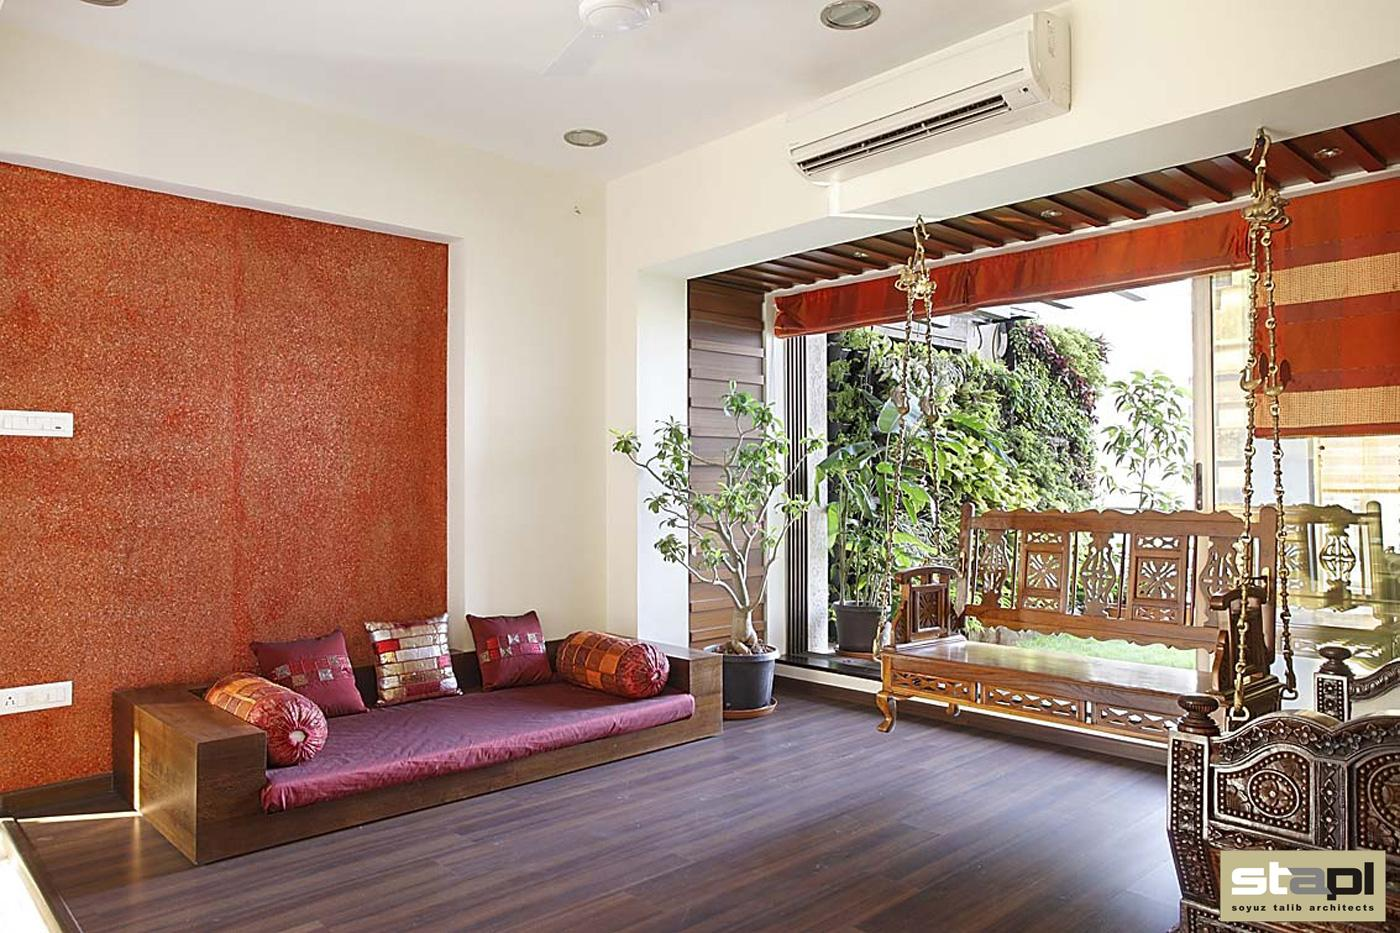 Private residence soyuz talib architects for Bharatiya baithak designs living room